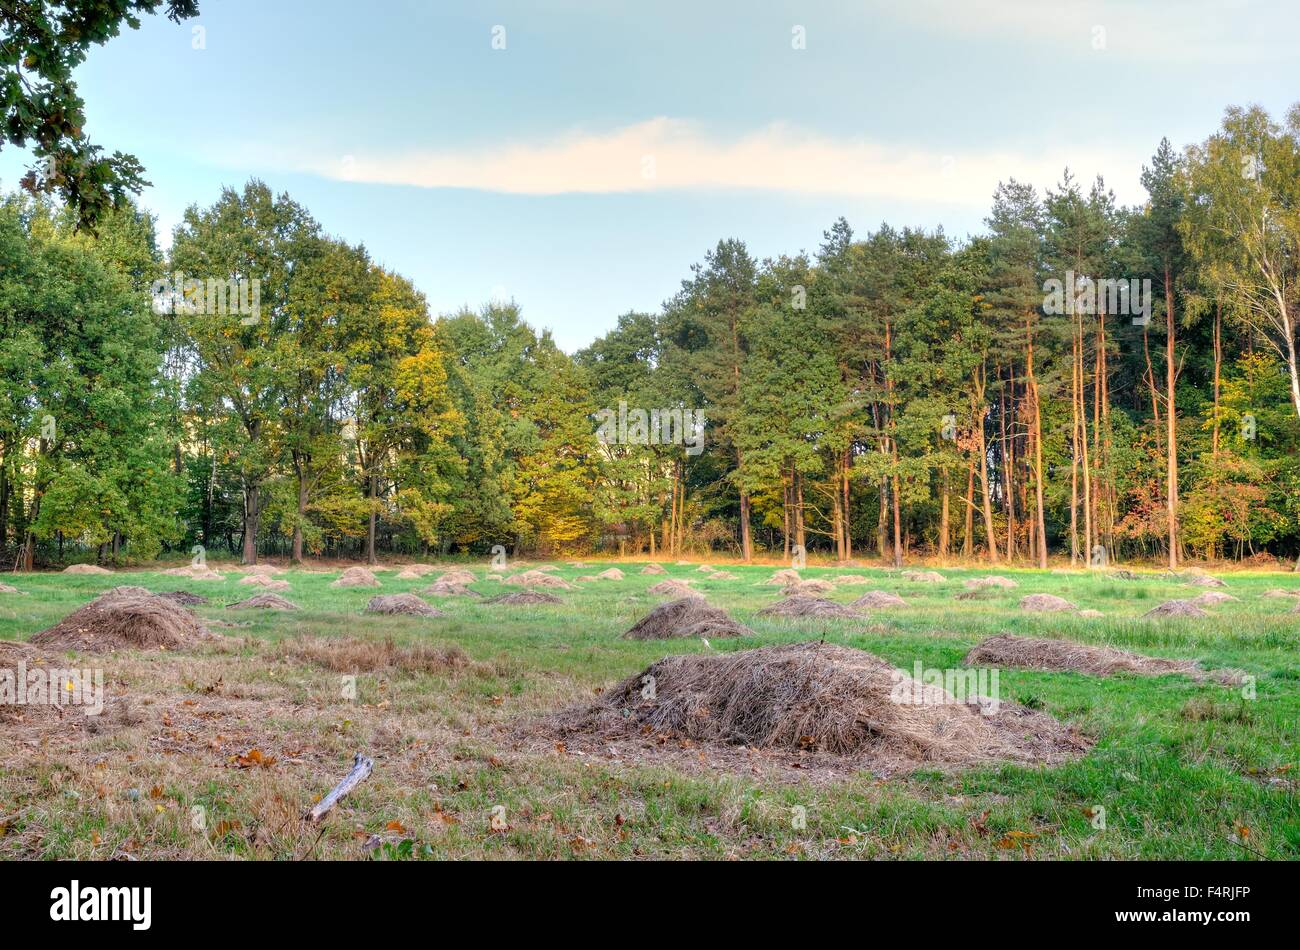 Autumn landscape. Trees and green glade in the forest. - Stock Image